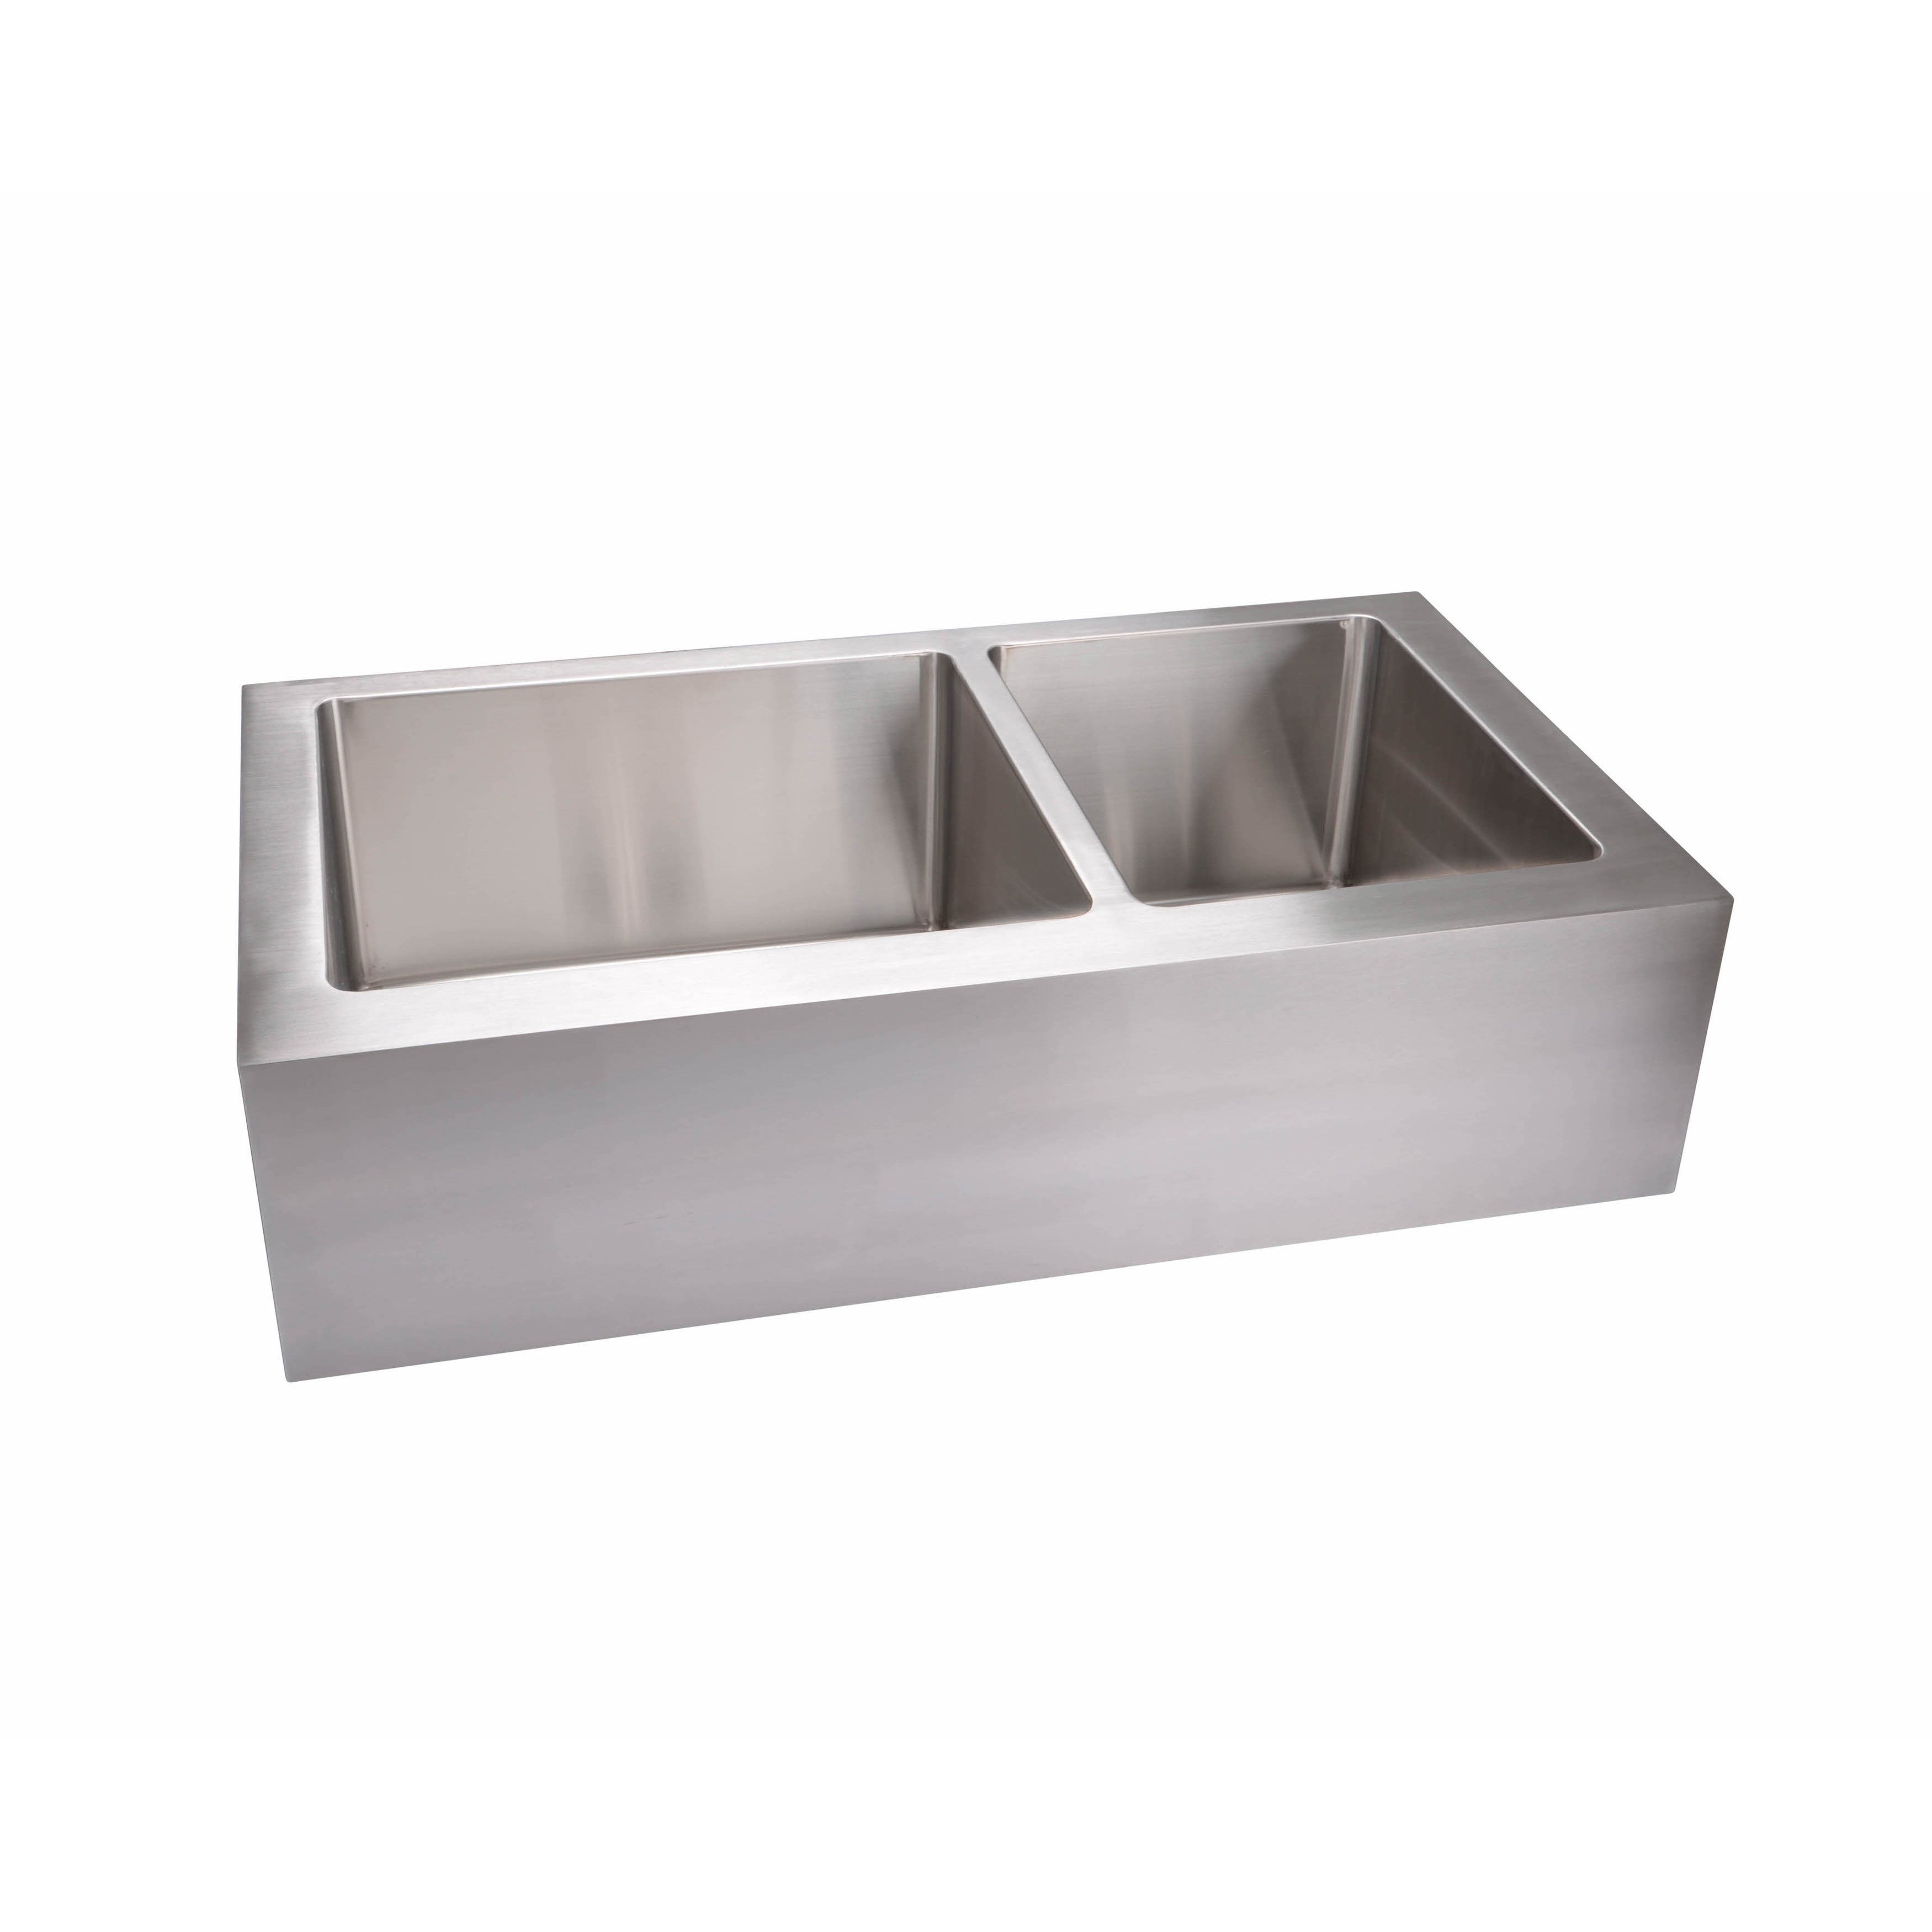 Large Bowl Kitchen Sink Hahn extra large 6040 flat apron double bowl kitchen sink free hahn extra large 6040 flat apron double bowl kitchen sink free shipping today overstock 18884848 workwithnaturefo